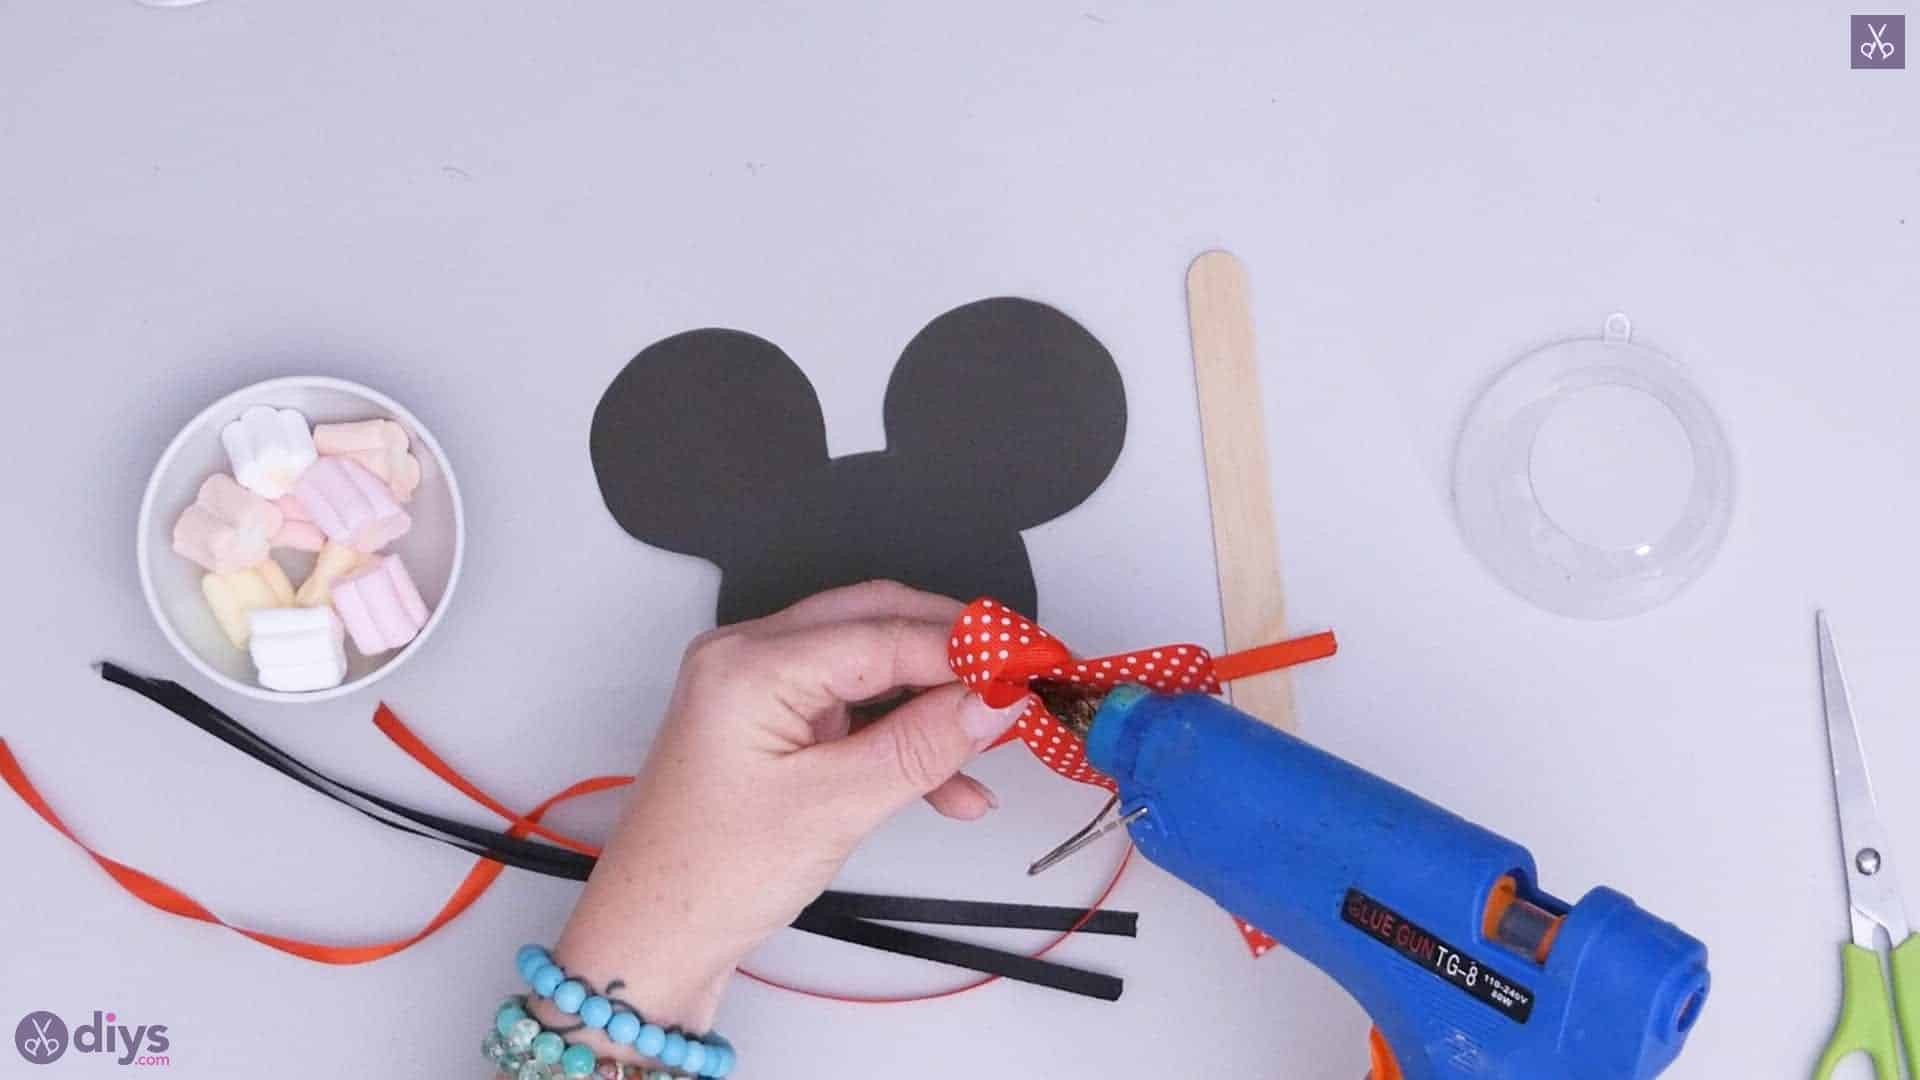 Diy minnie mouse candy holder step 3b